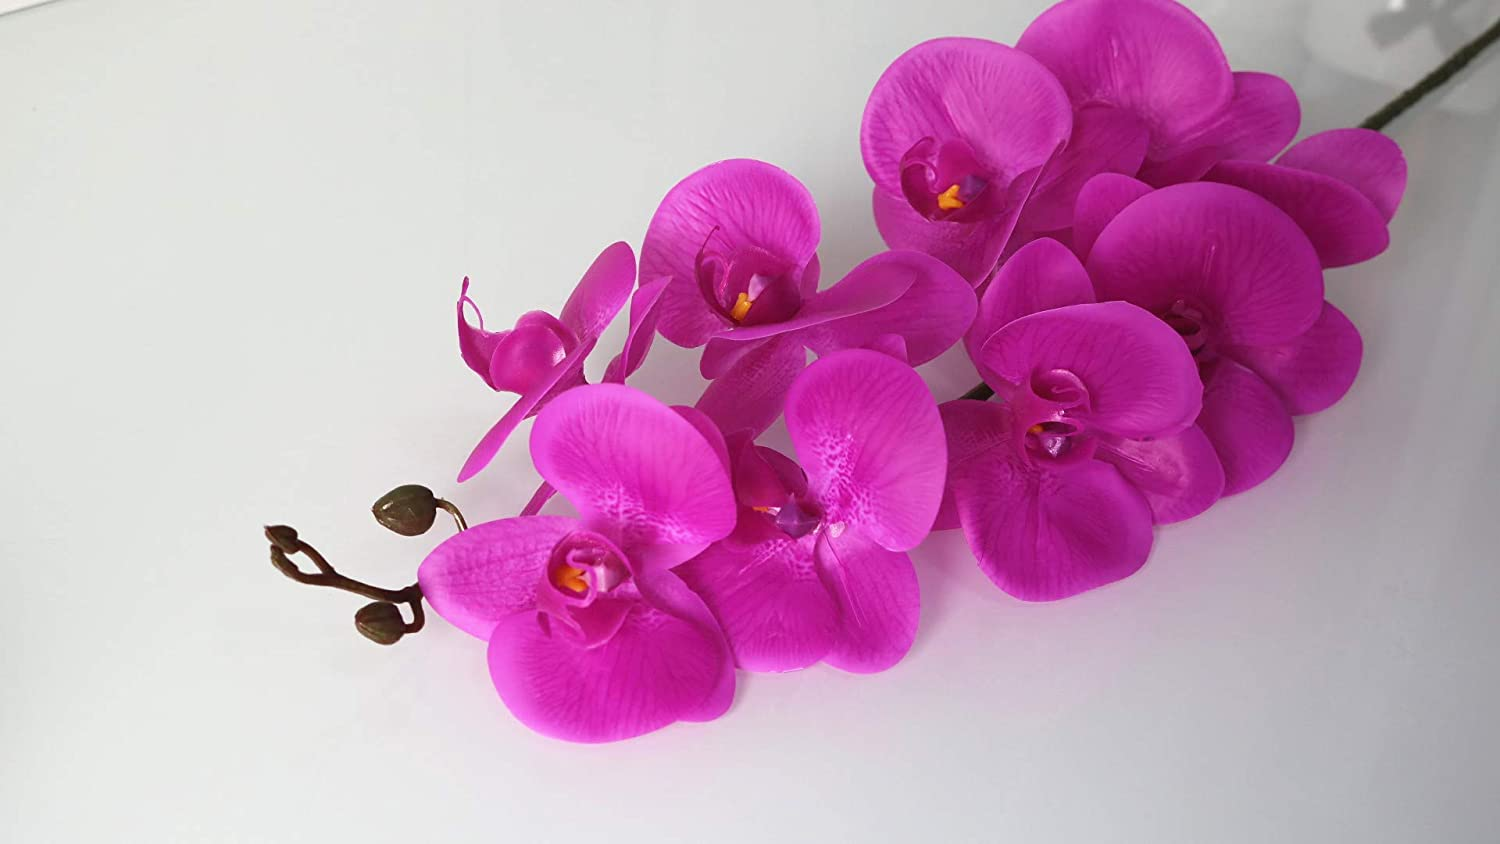 overseas ZKS-KS Artificial Flower Home Decor Phalaenopsis Large Silicone Limited time cheap sale